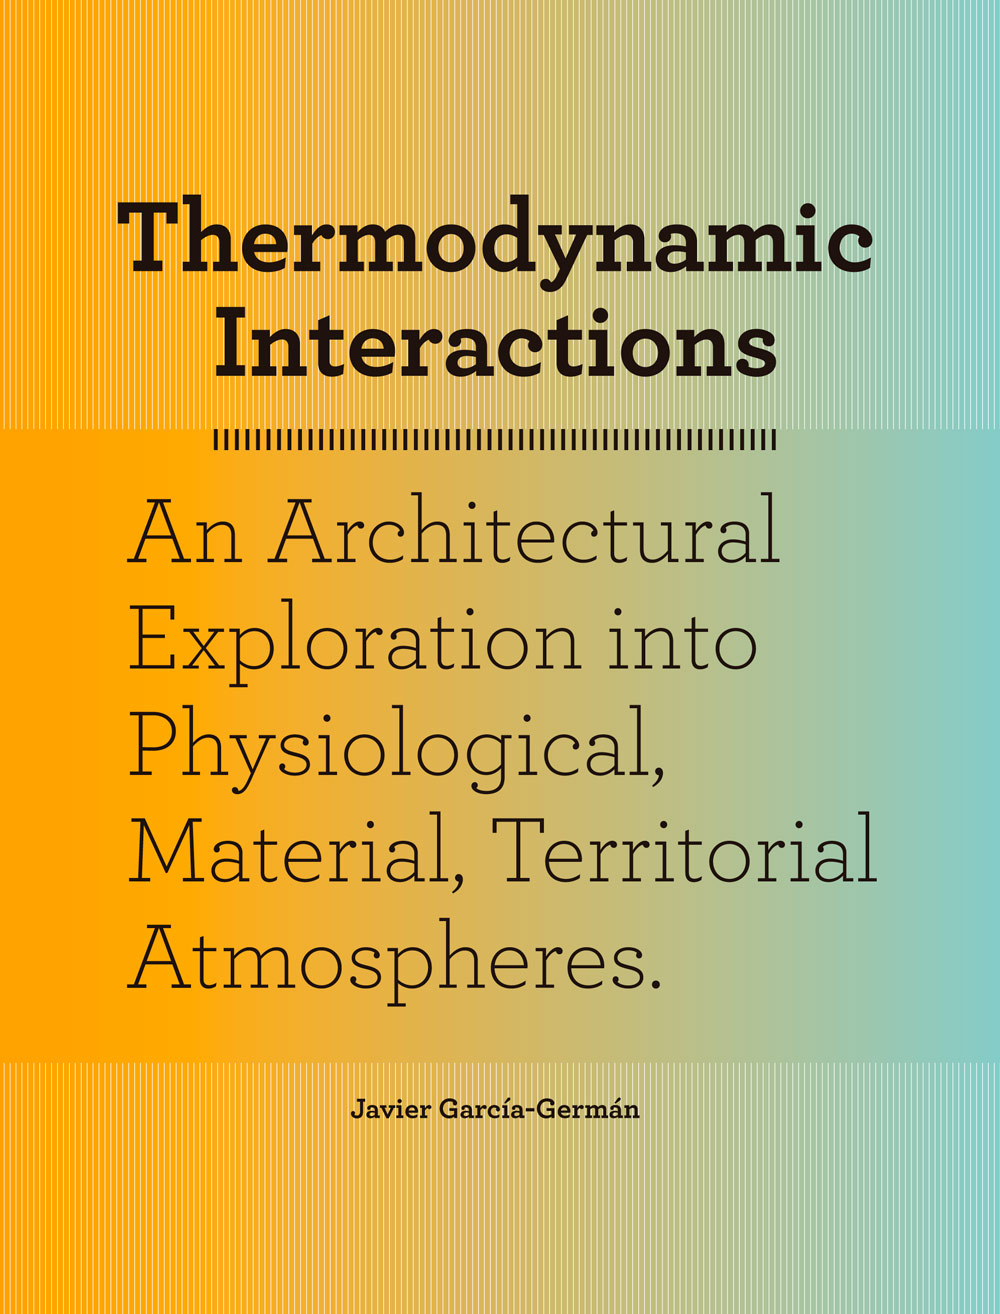 actar publishers thermodynamic interactions actar publishers